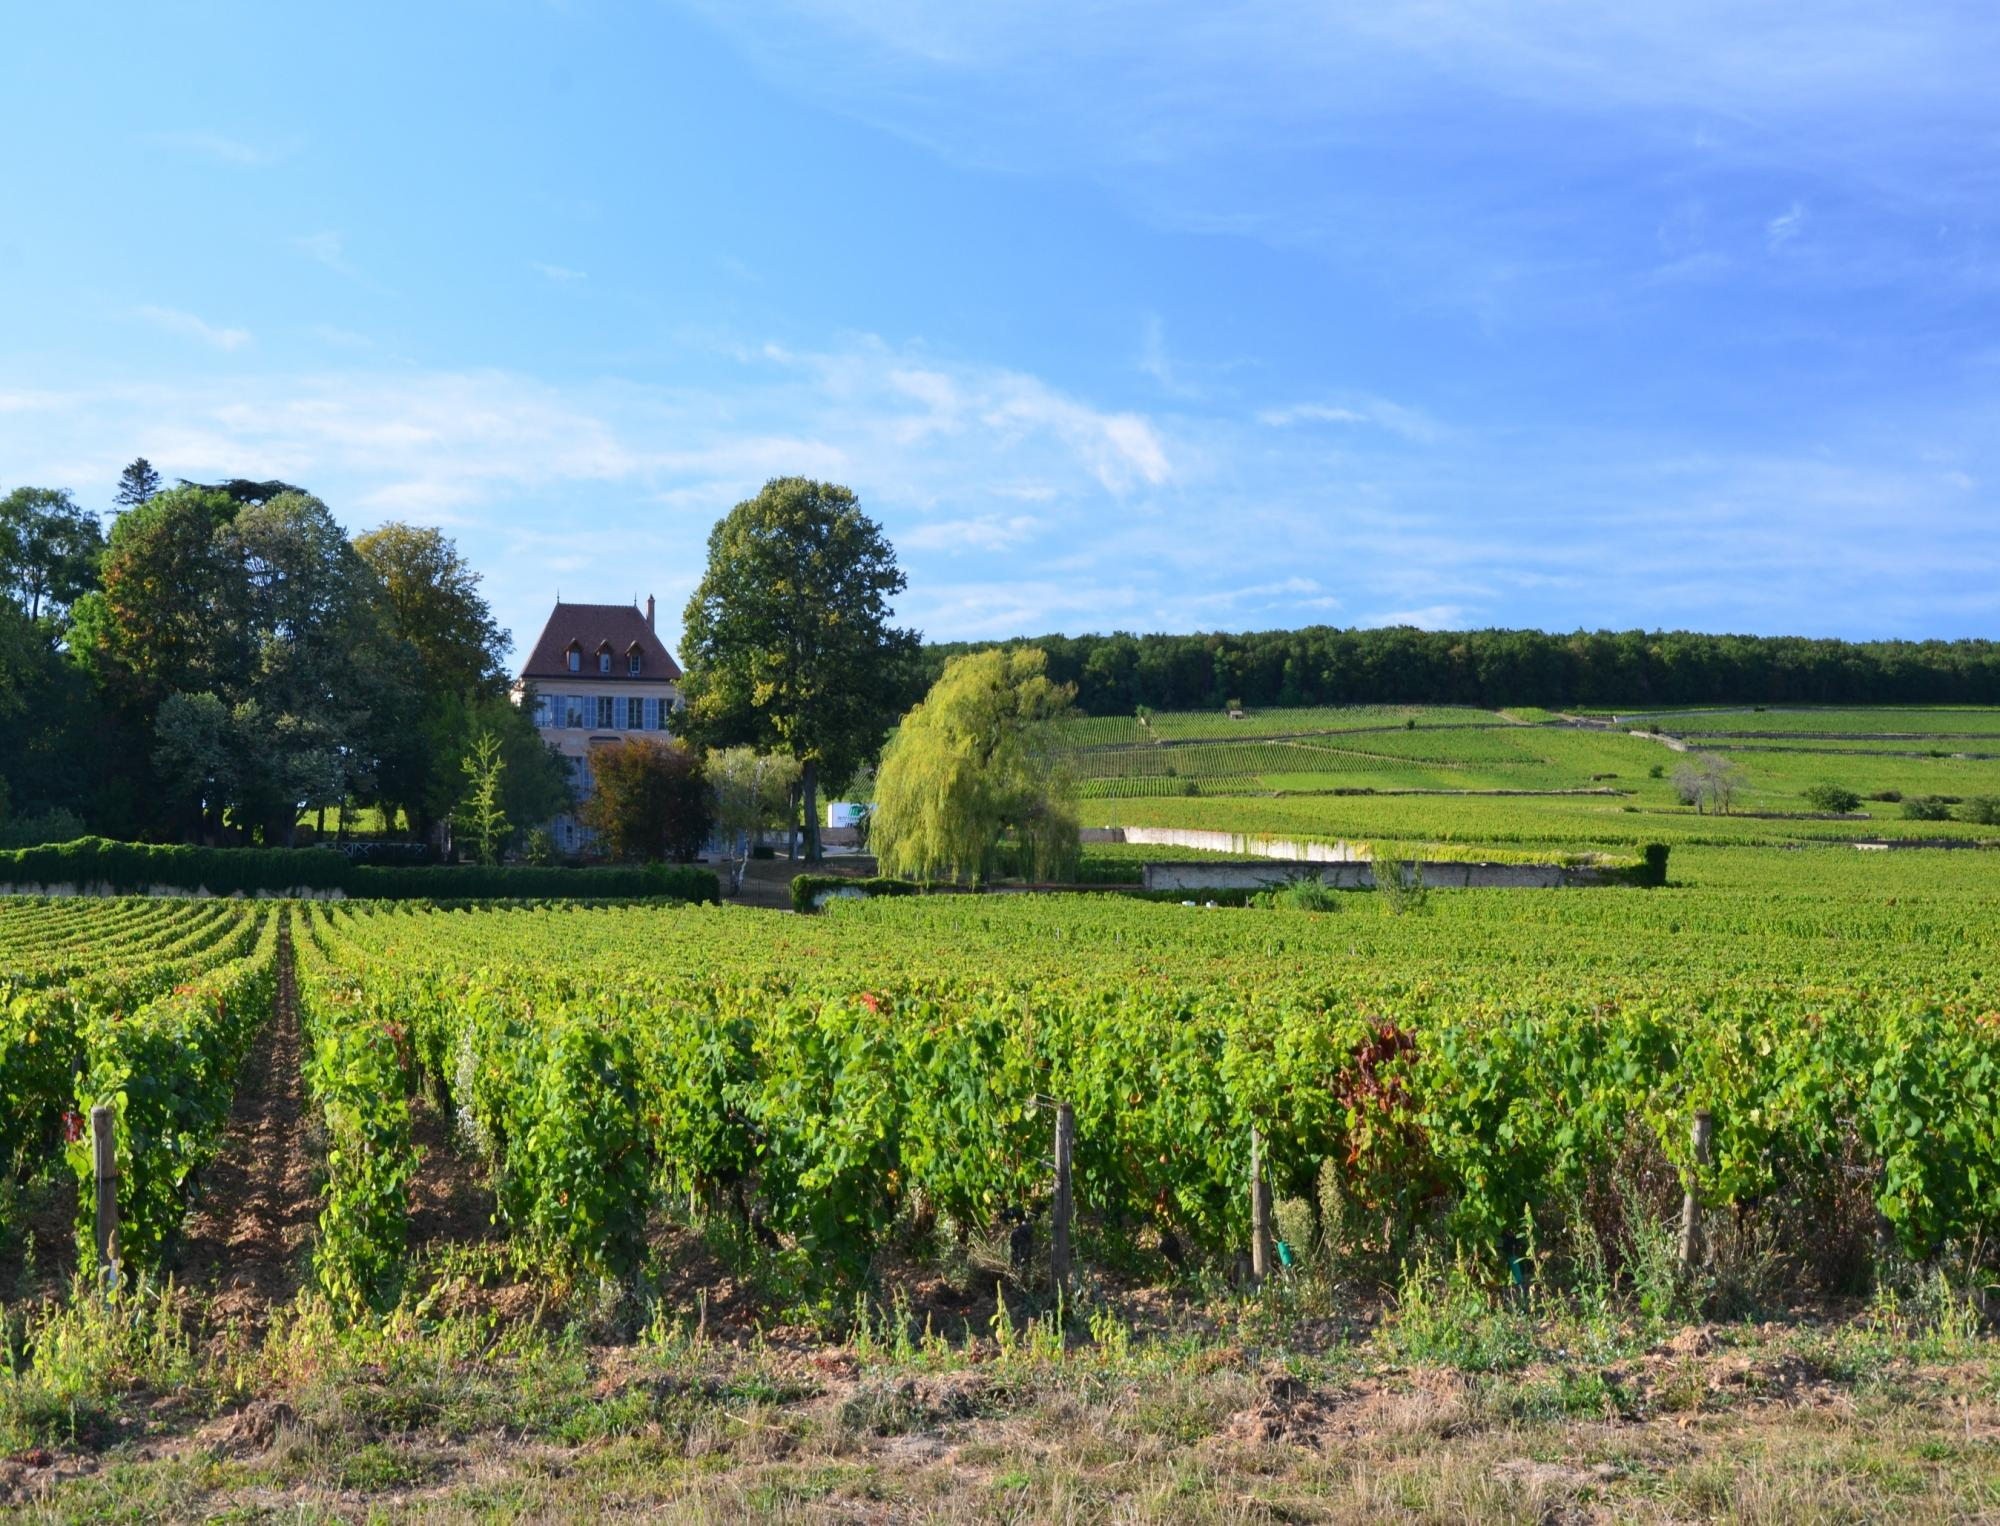 Discover Burgundy - Vacation package : France Coast to Coast  - Land of France, travel agency in France